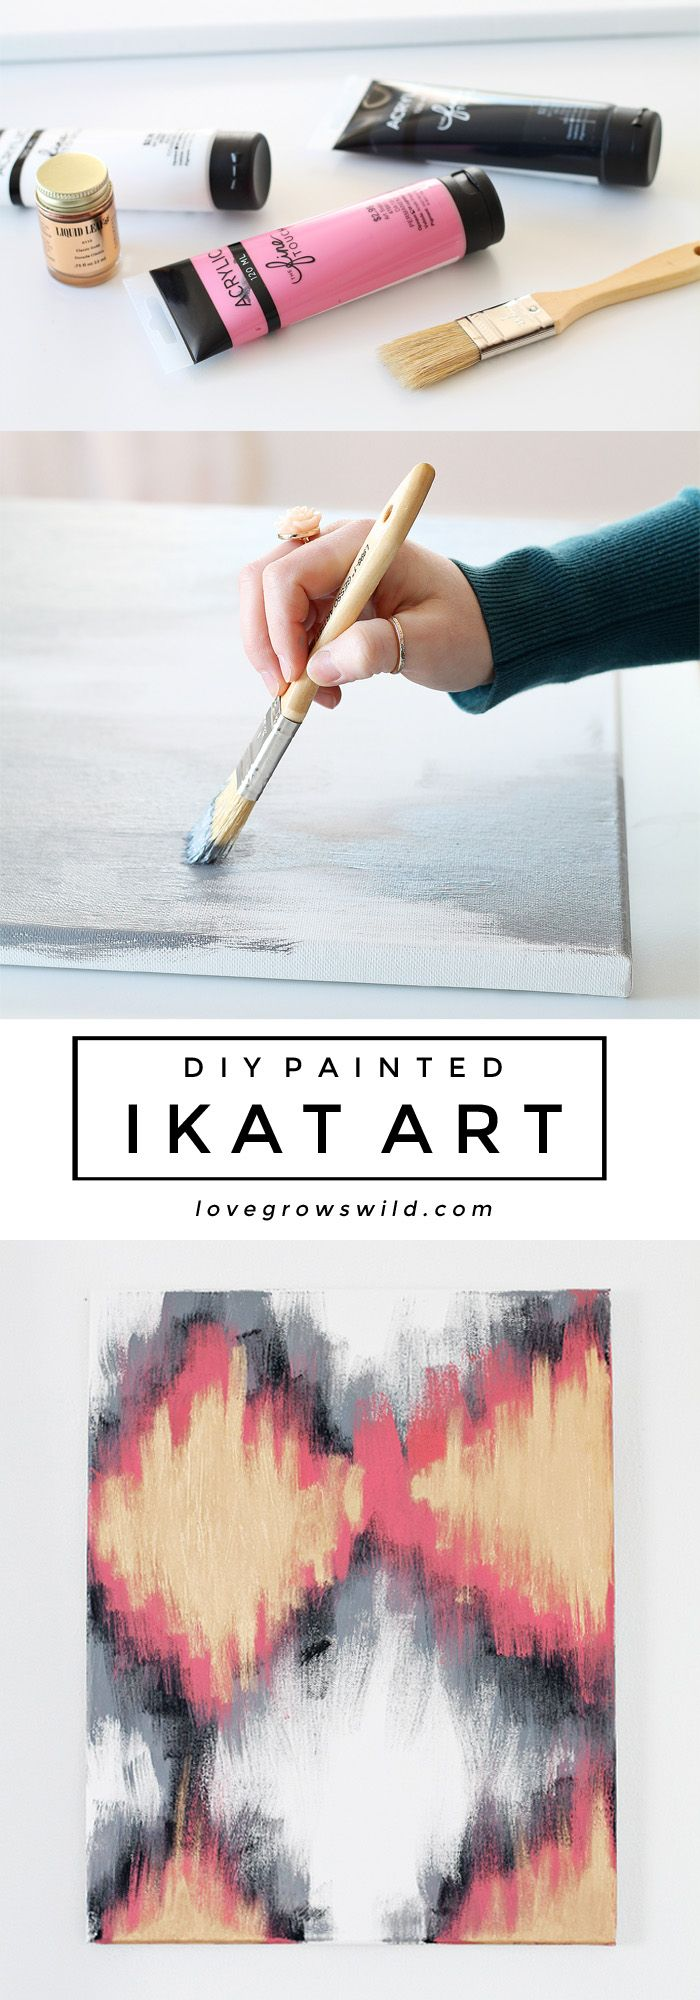 DIY Painted Ikat Art - Creating your own custom artwork is easy! Just follow…